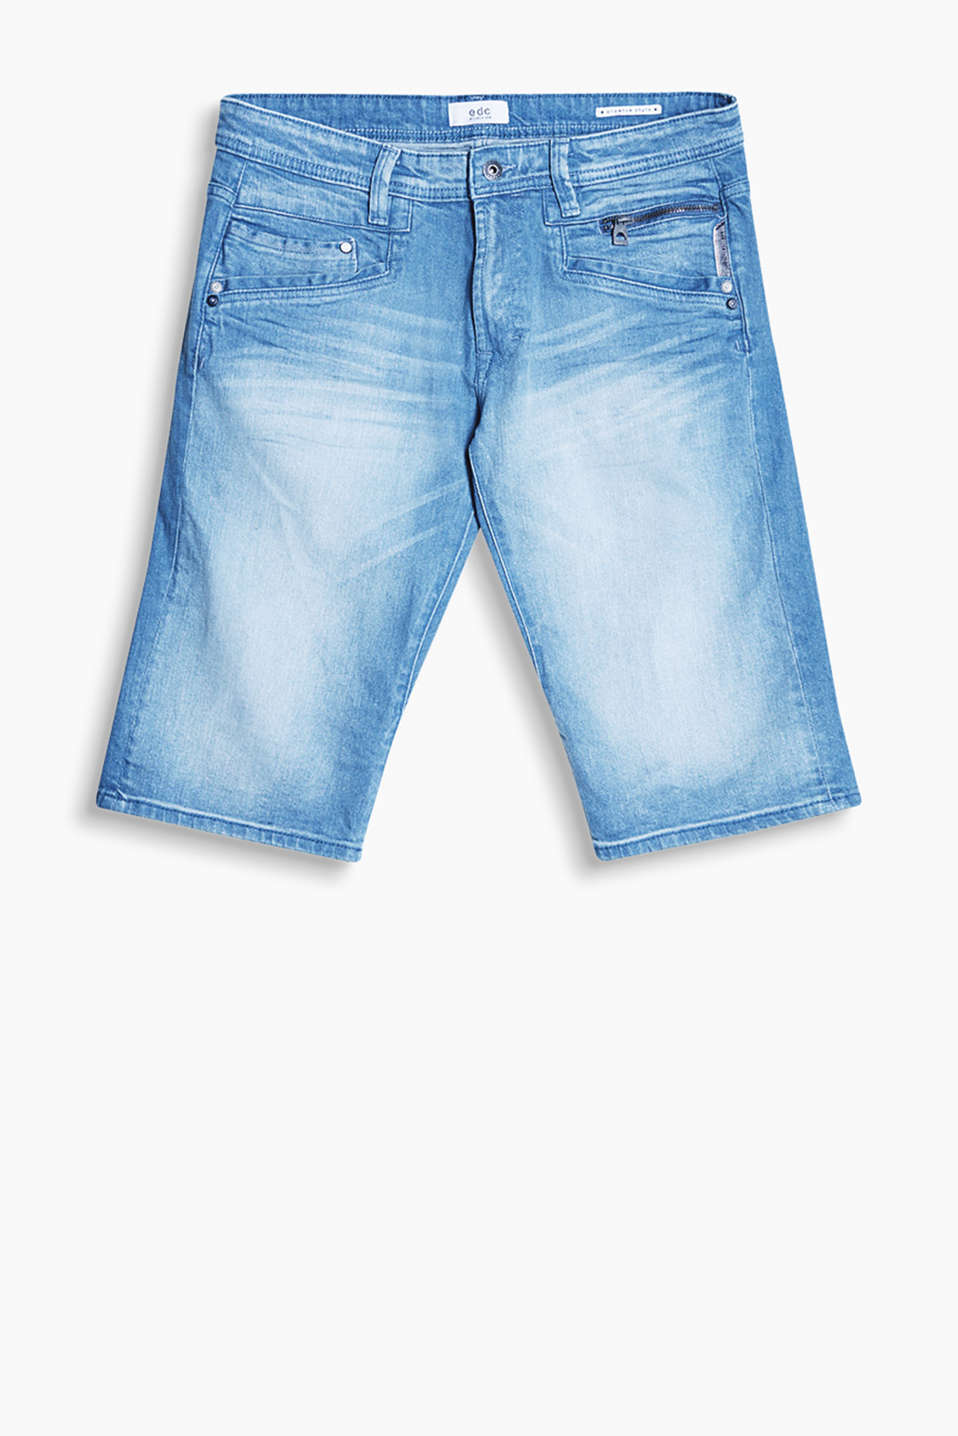 Denim five-pocket style shorts with stylish washed effects